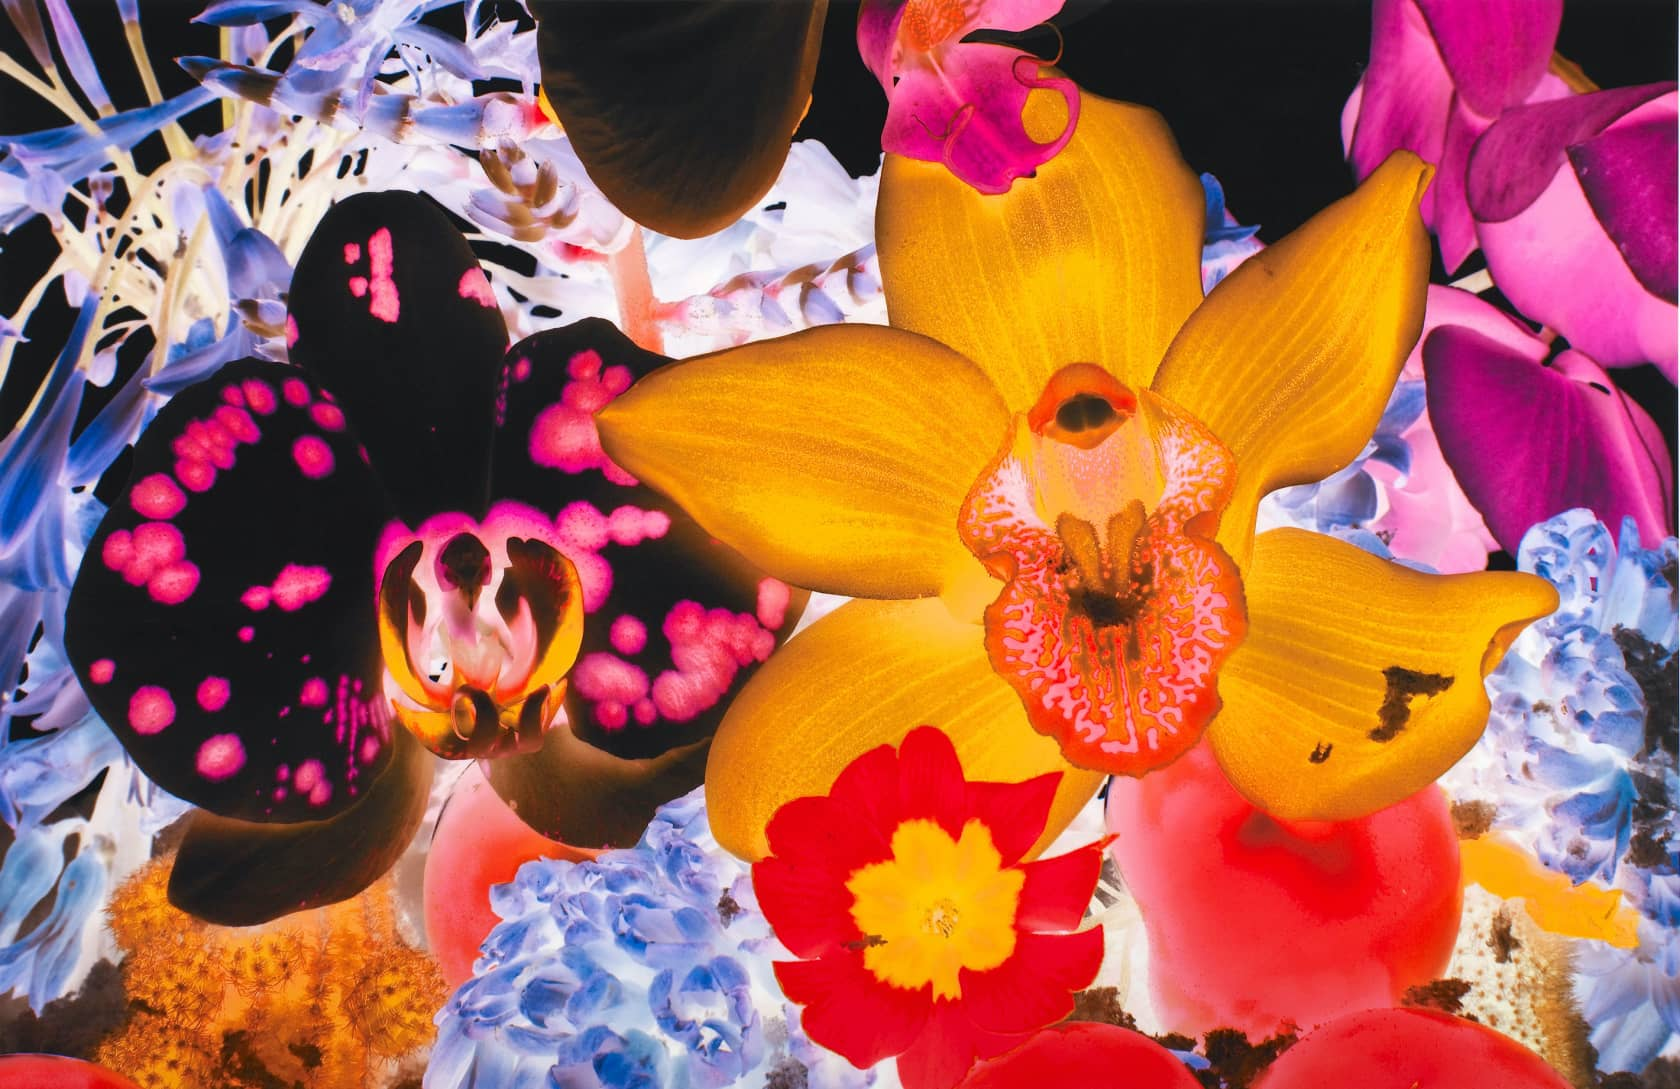 Marc Quinn At the Far Edges of the Universe #5 Pigment Print